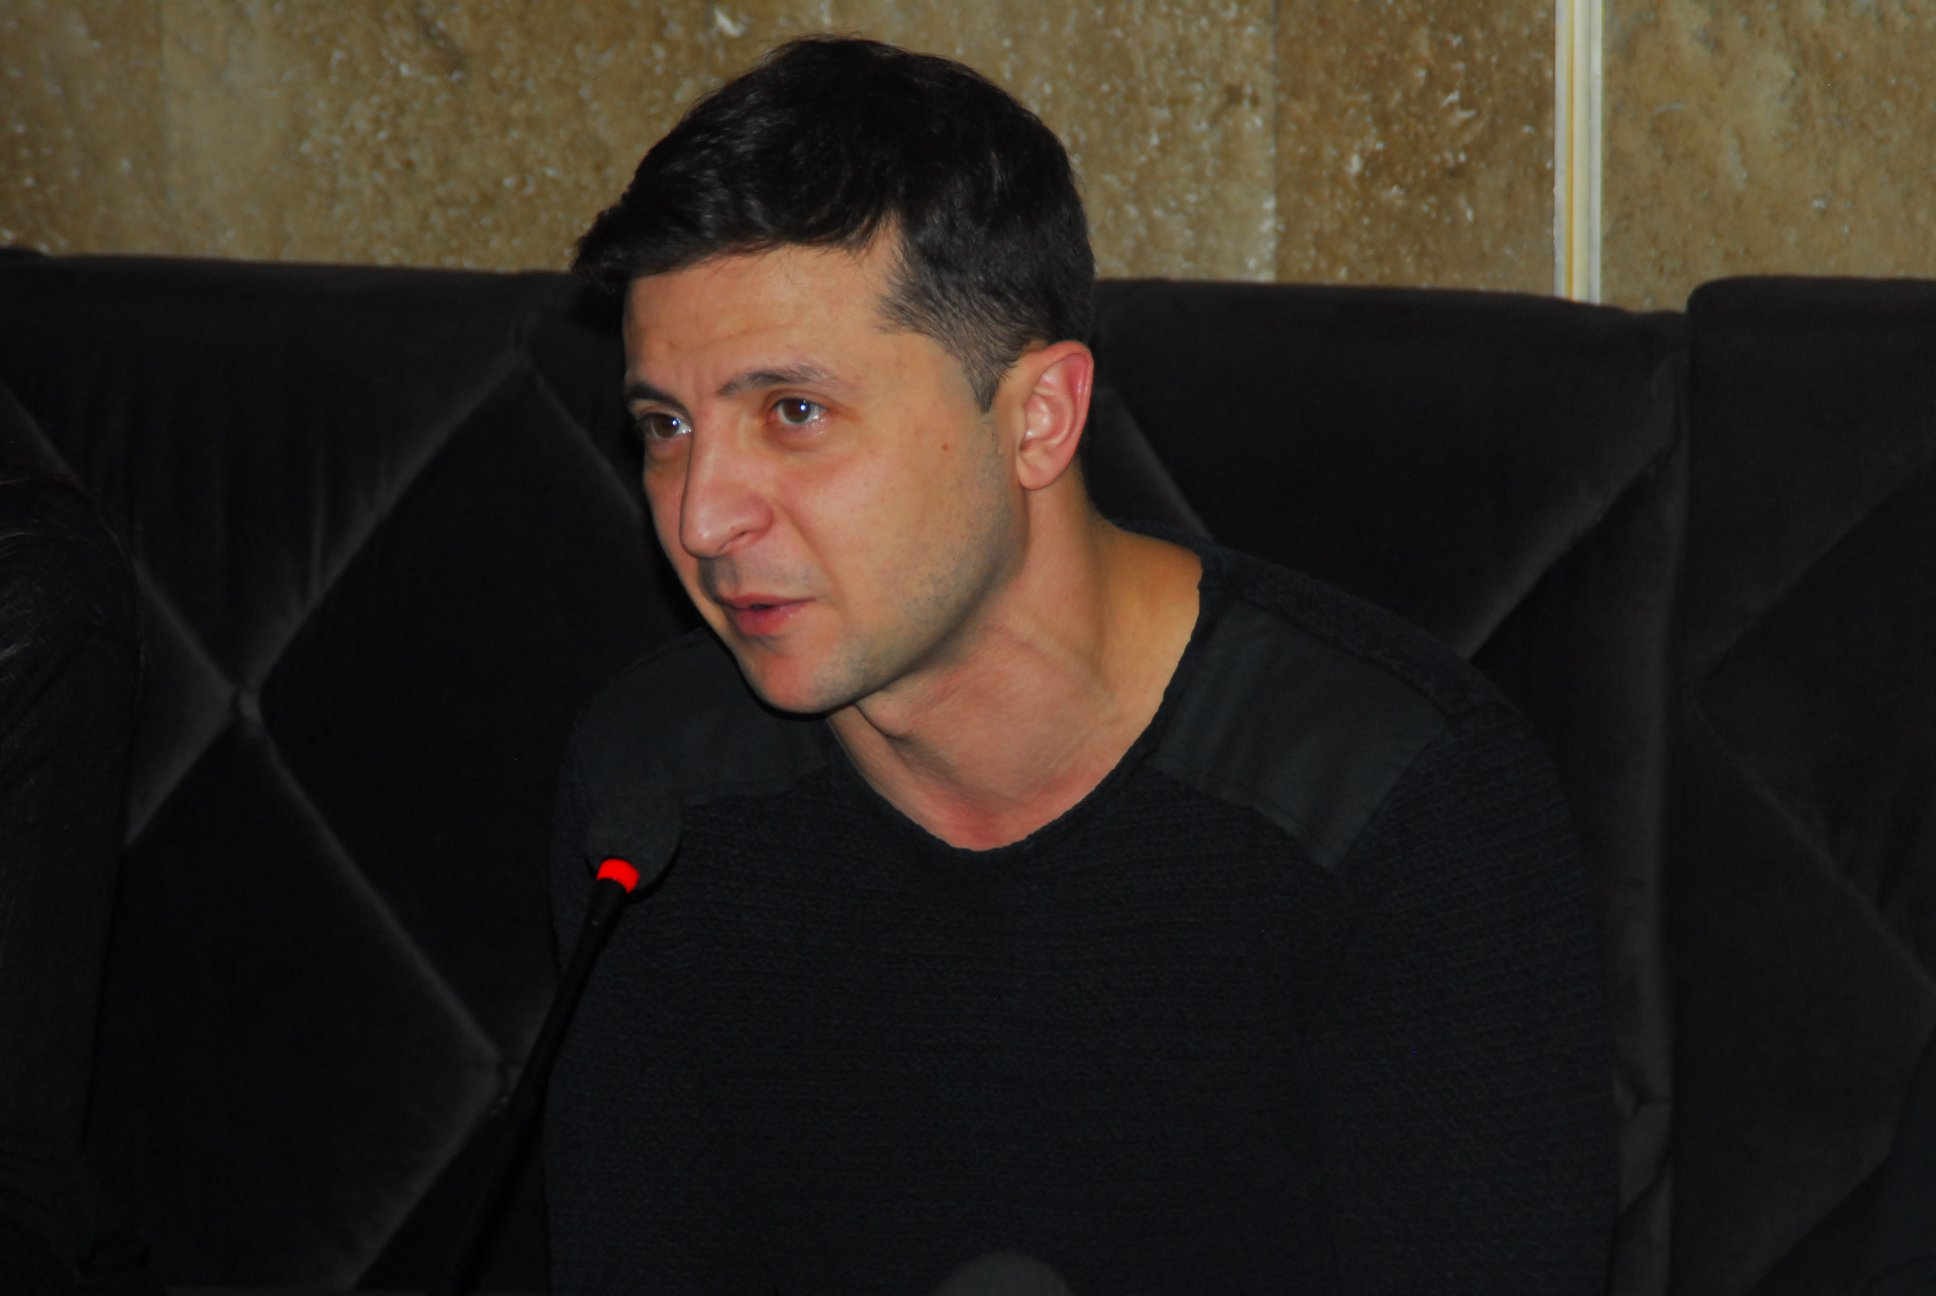 Ukrainian presidential candidate Volodymyr Zelensky pictured in December 2018. (Wikimedia)